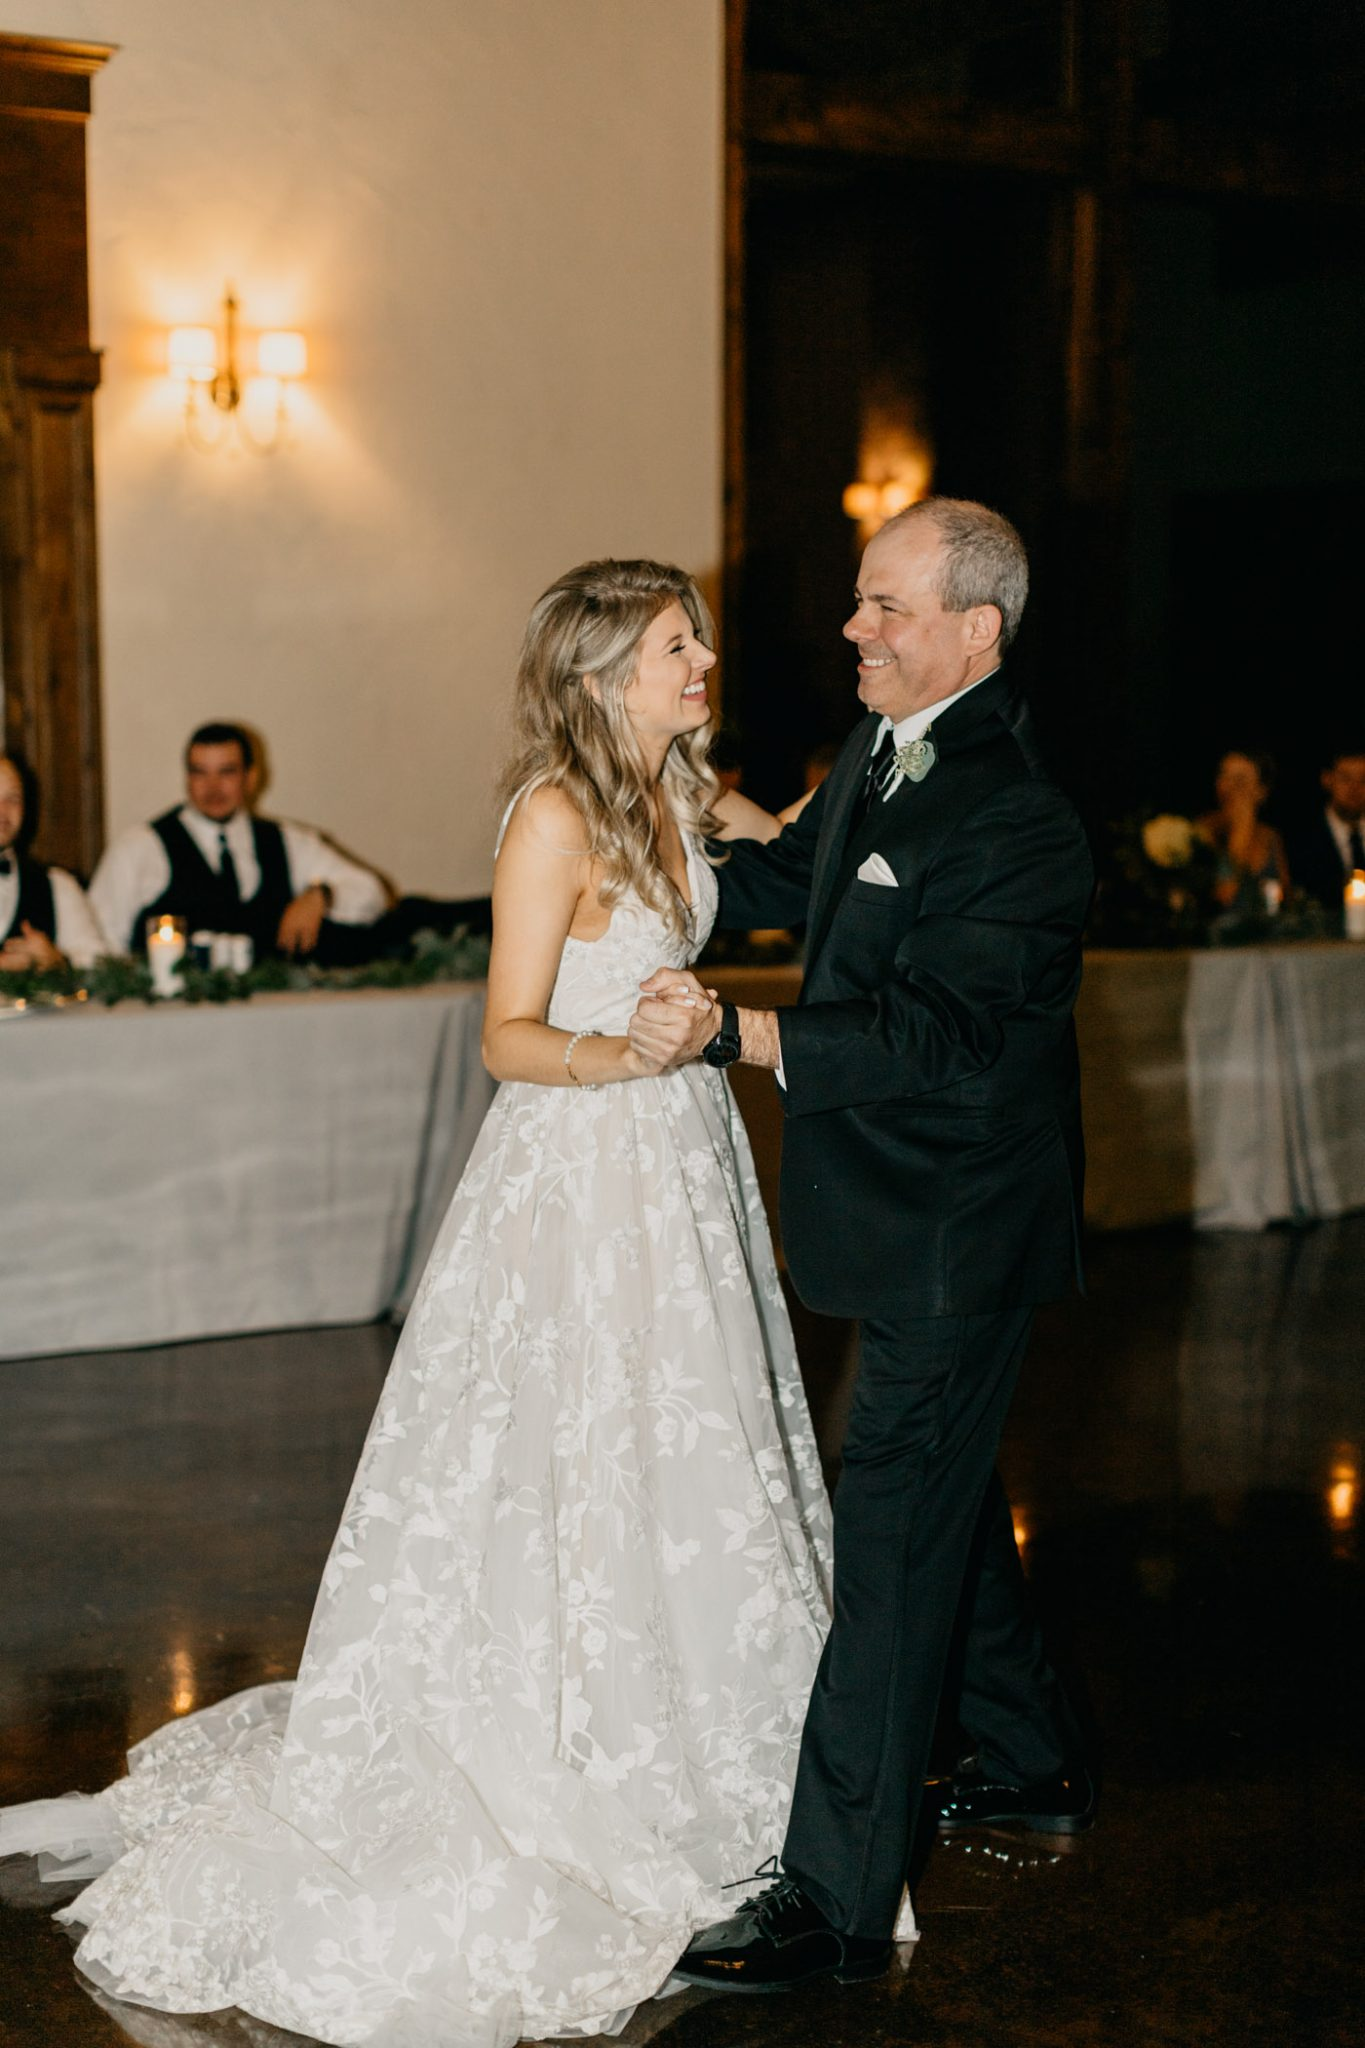 stunning bride dancing with her father on her wedding day